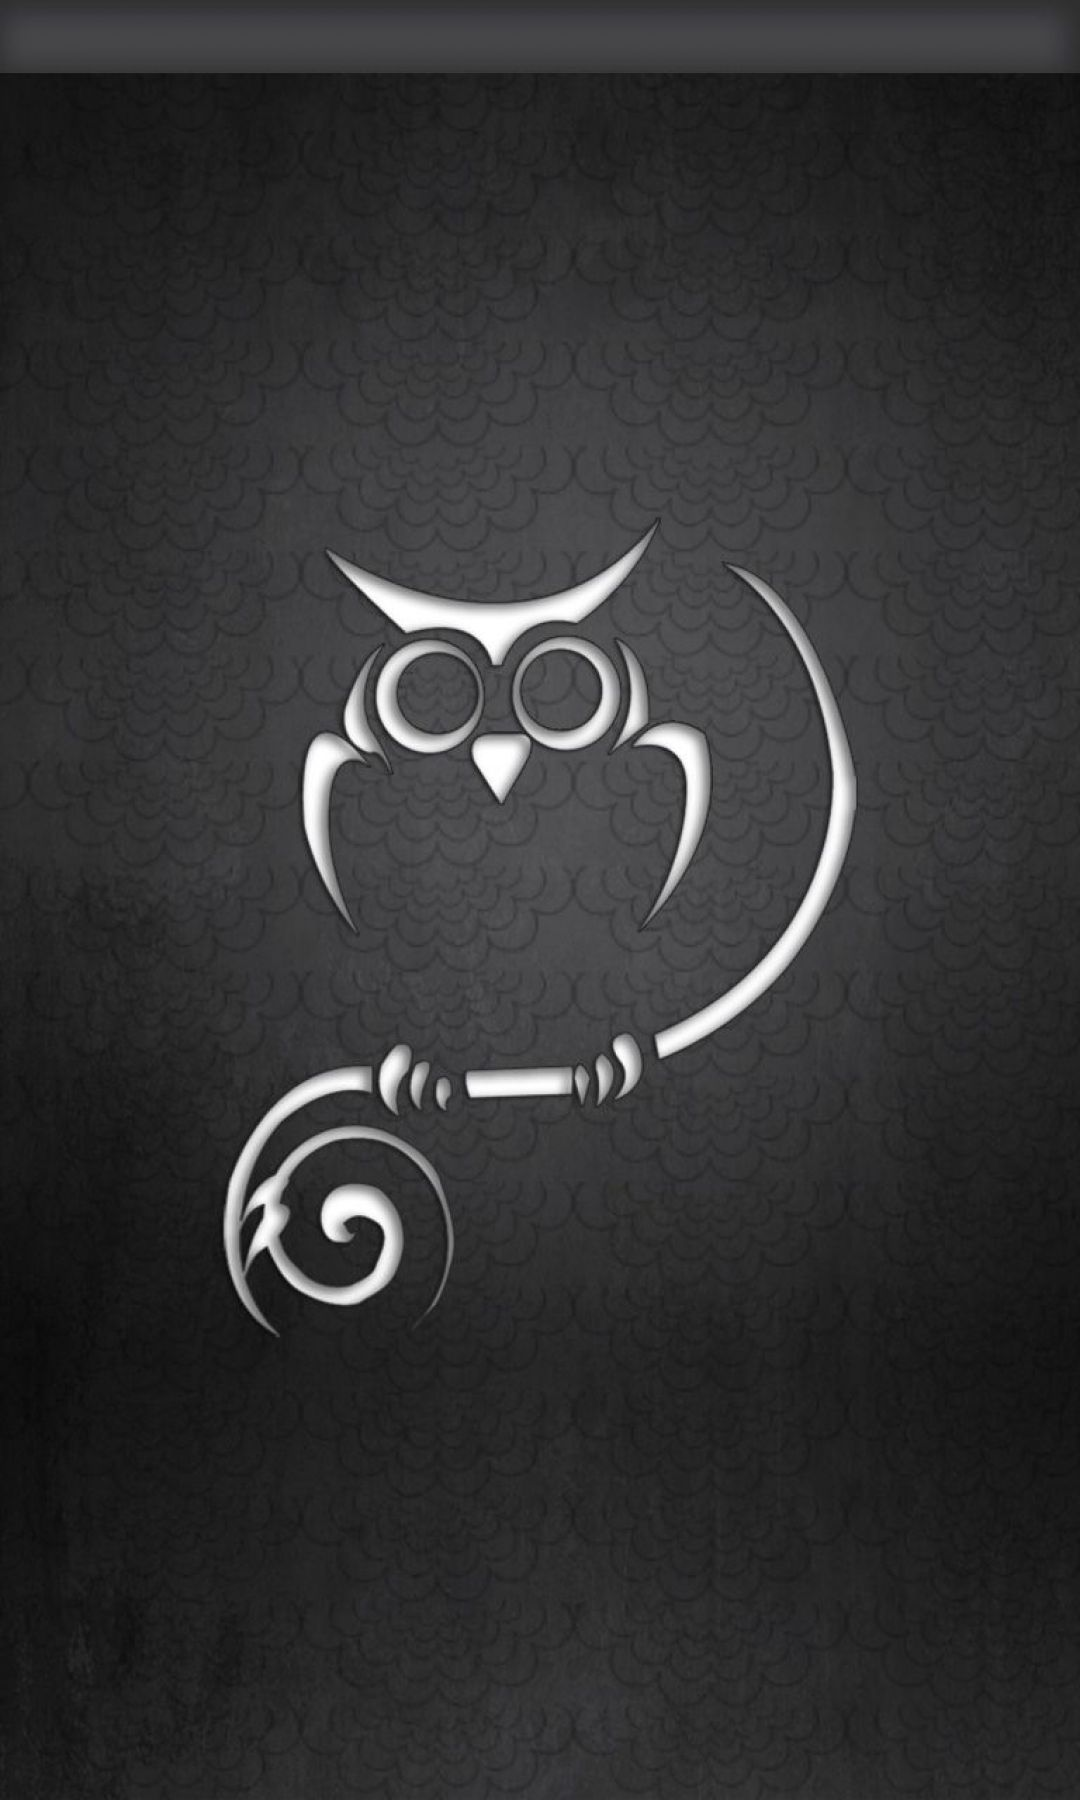 40 Black And White Owl Android Iphone Desktop Hd Backgrounds Wallpapers 1080p 4k 1080x1800 2020